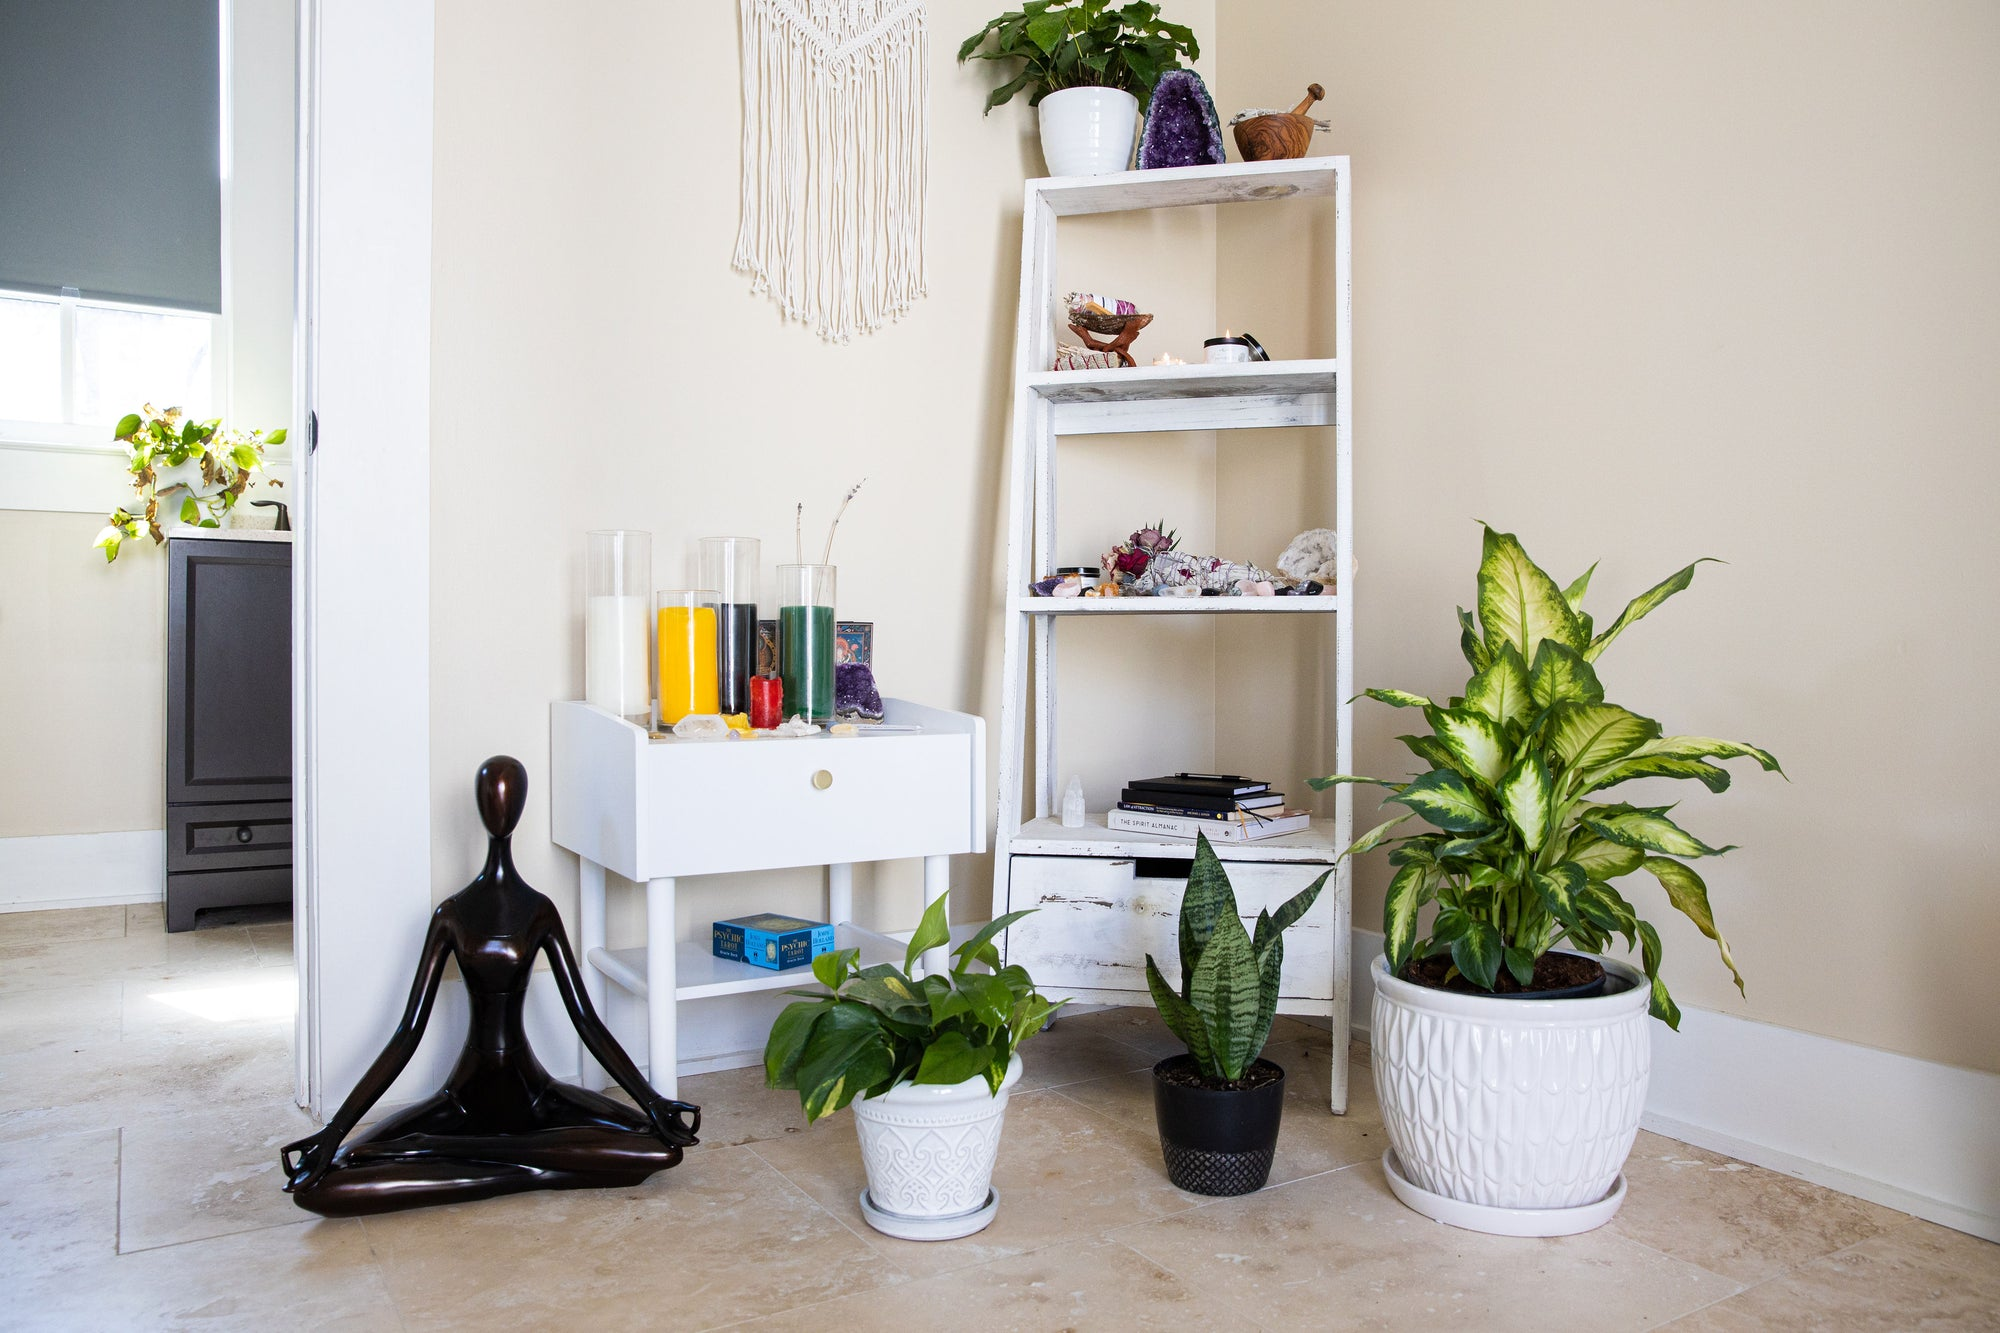 4 Ways Plants Help Make Your Space Better